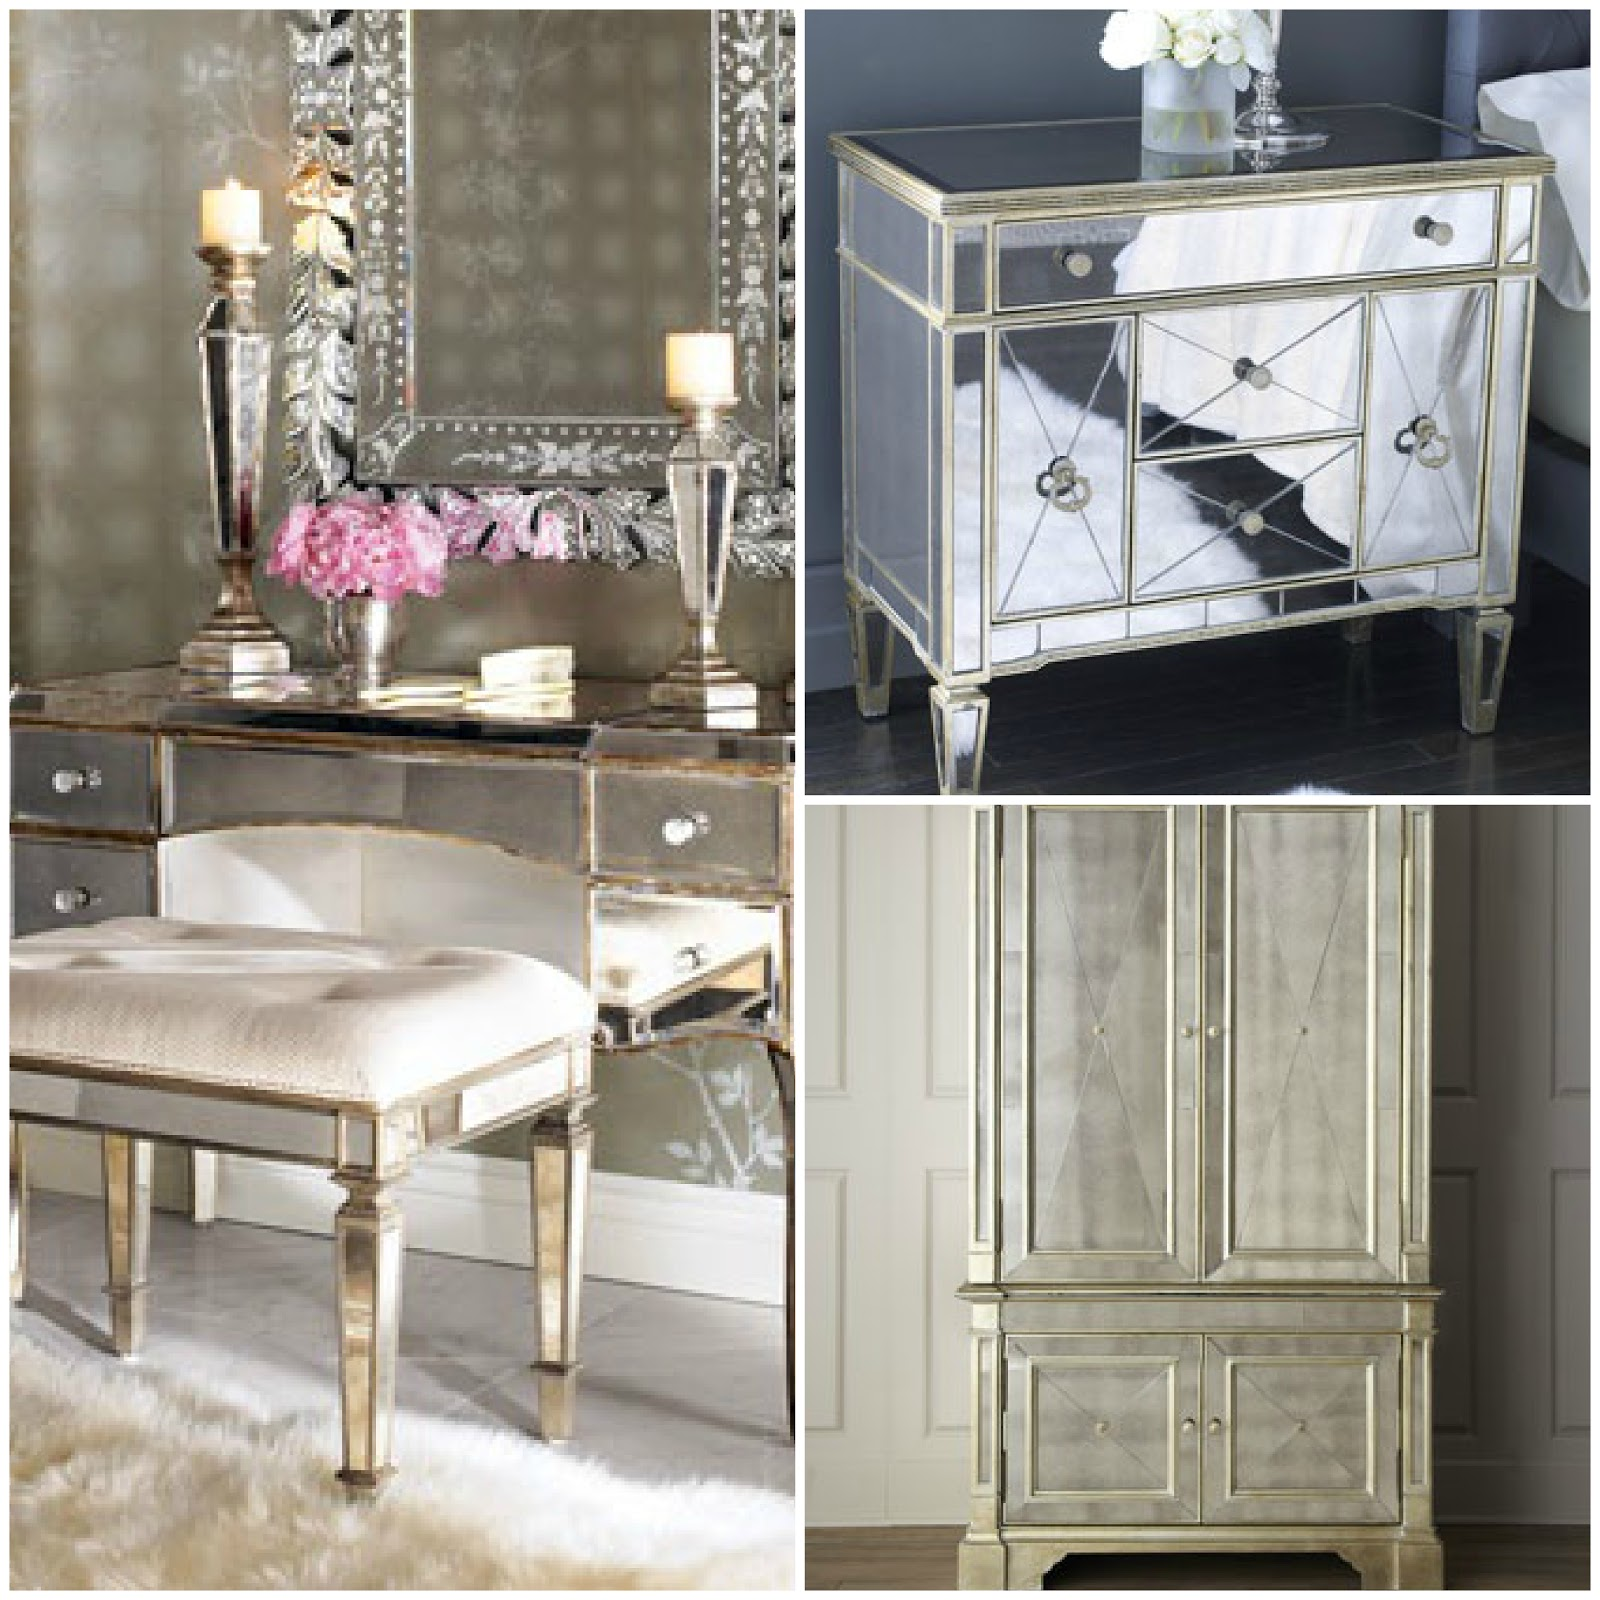 Mirrored Furniture Bedroom: Un Coup D'aile: Mirrored Furniture